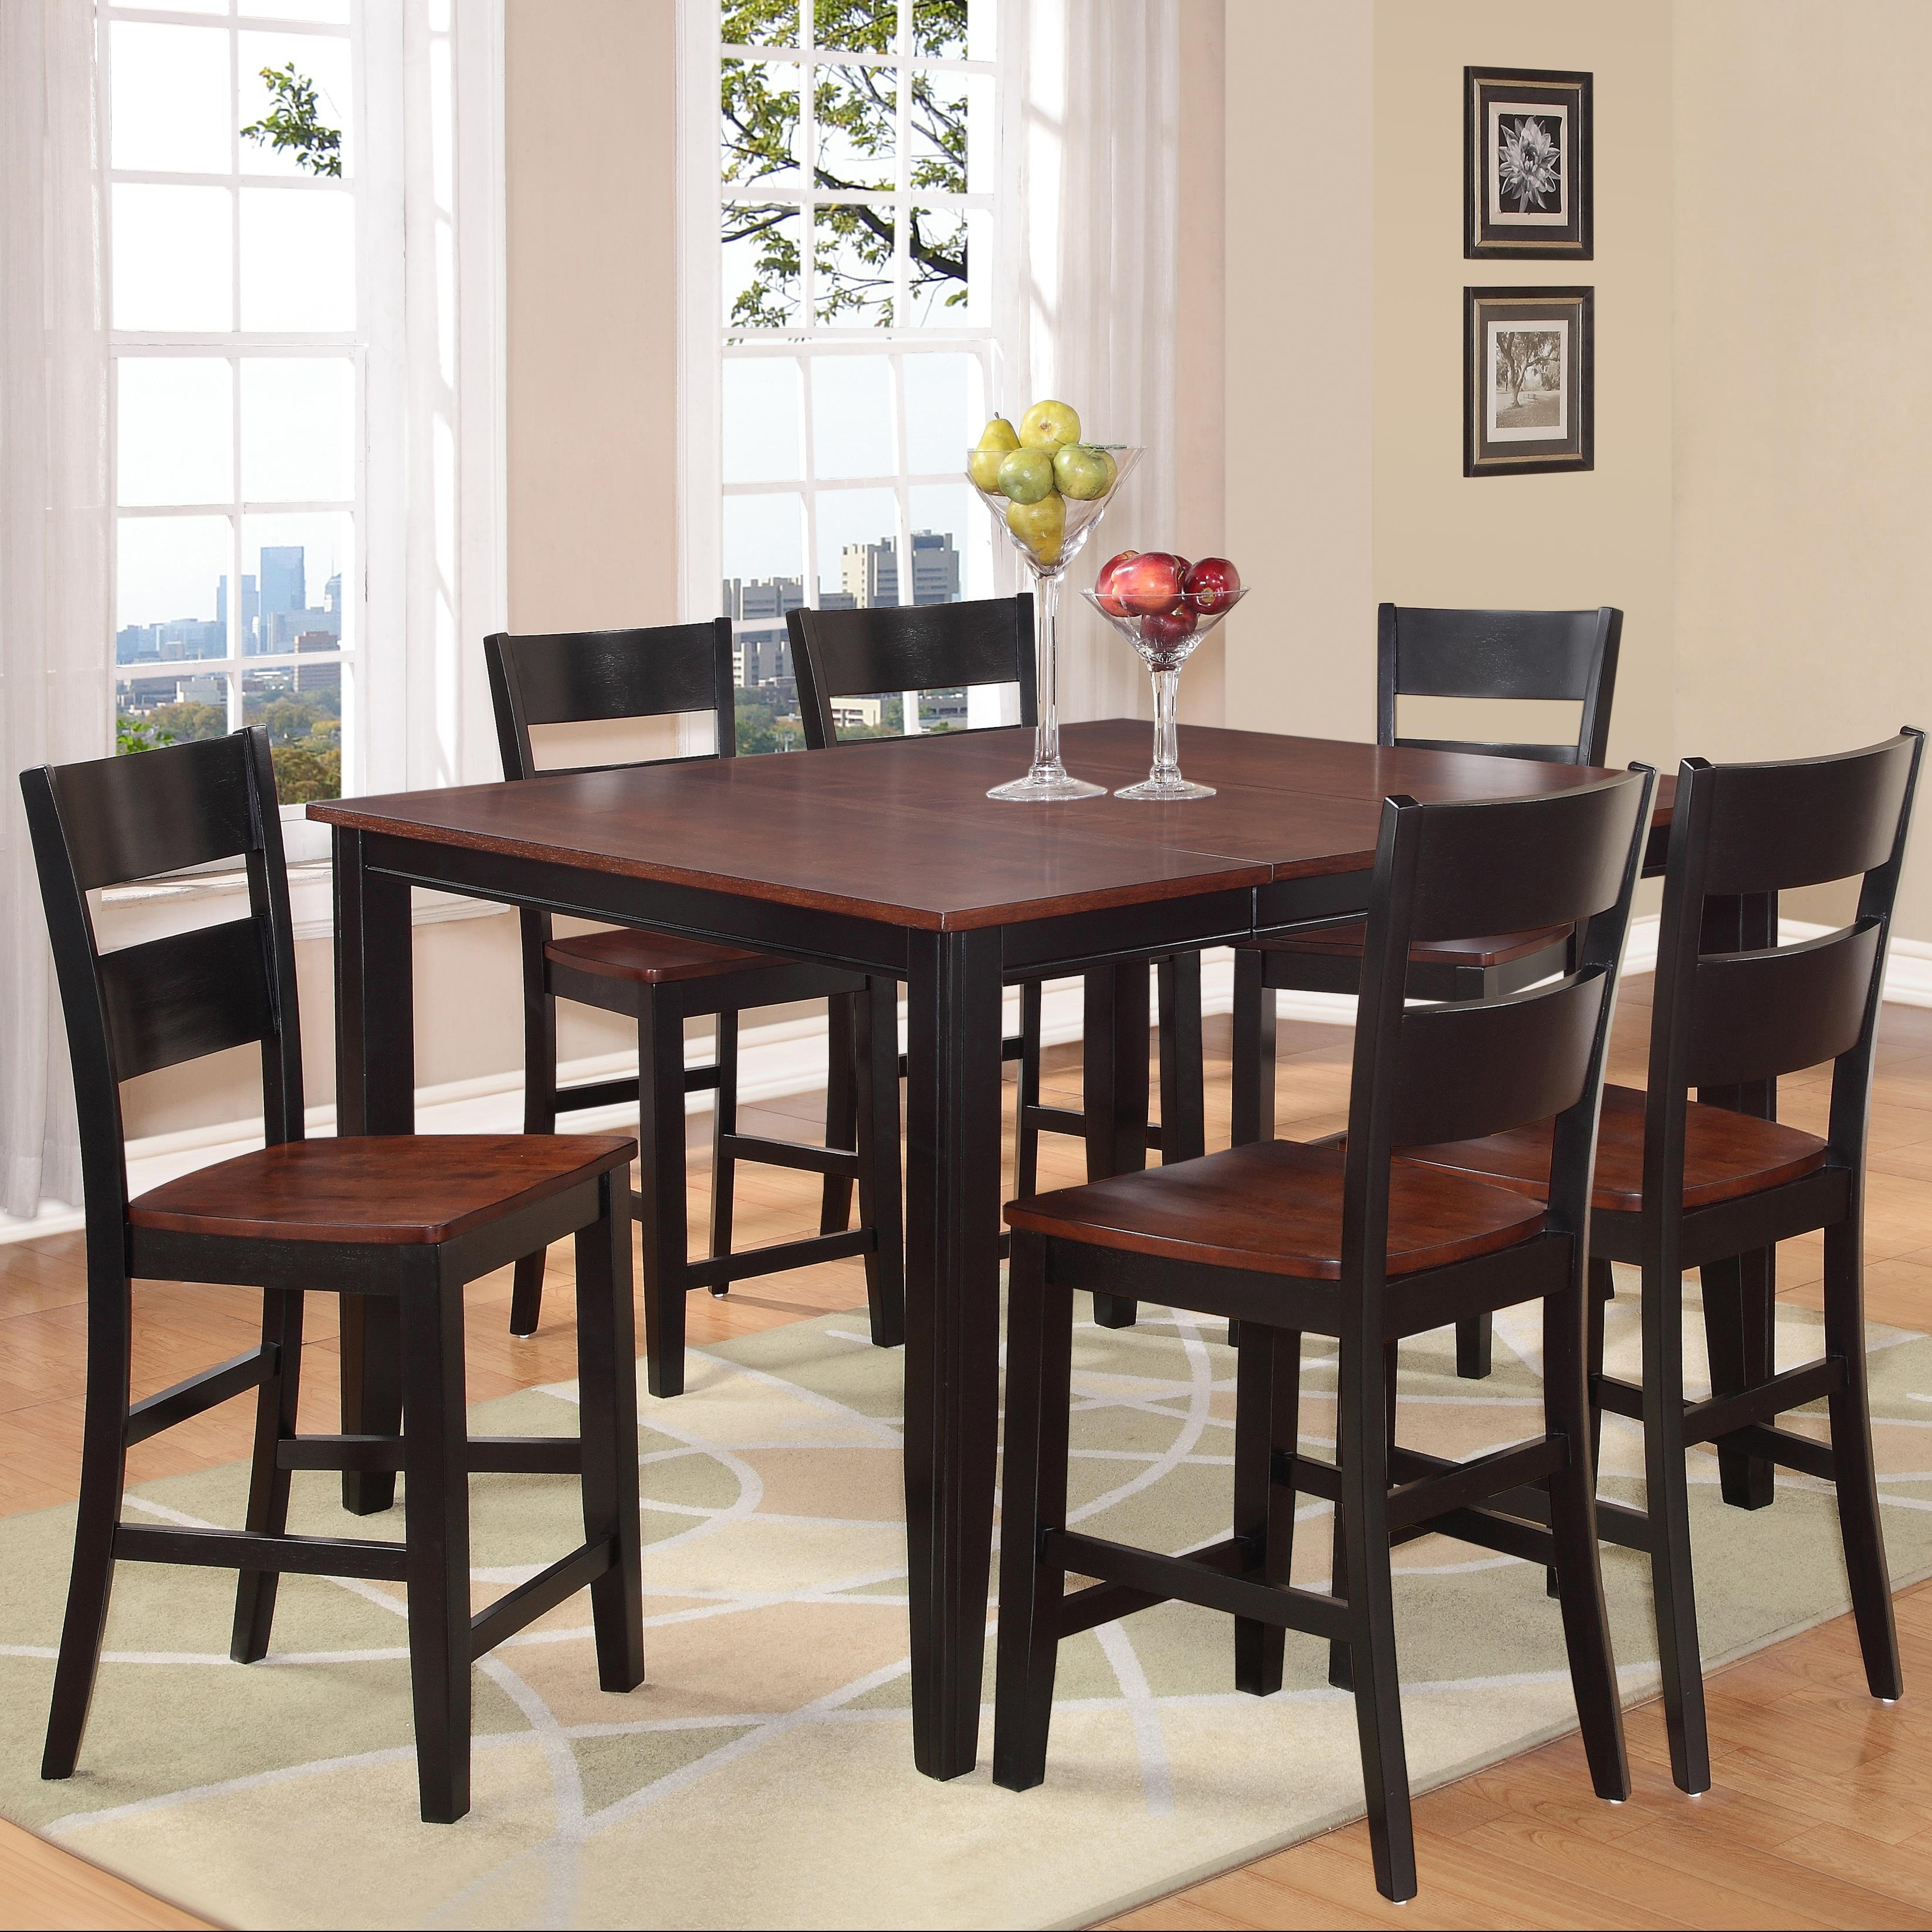 holland house 8202 7 piece counter height dining set with. Black Bedroom Furniture Sets. Home Design Ideas